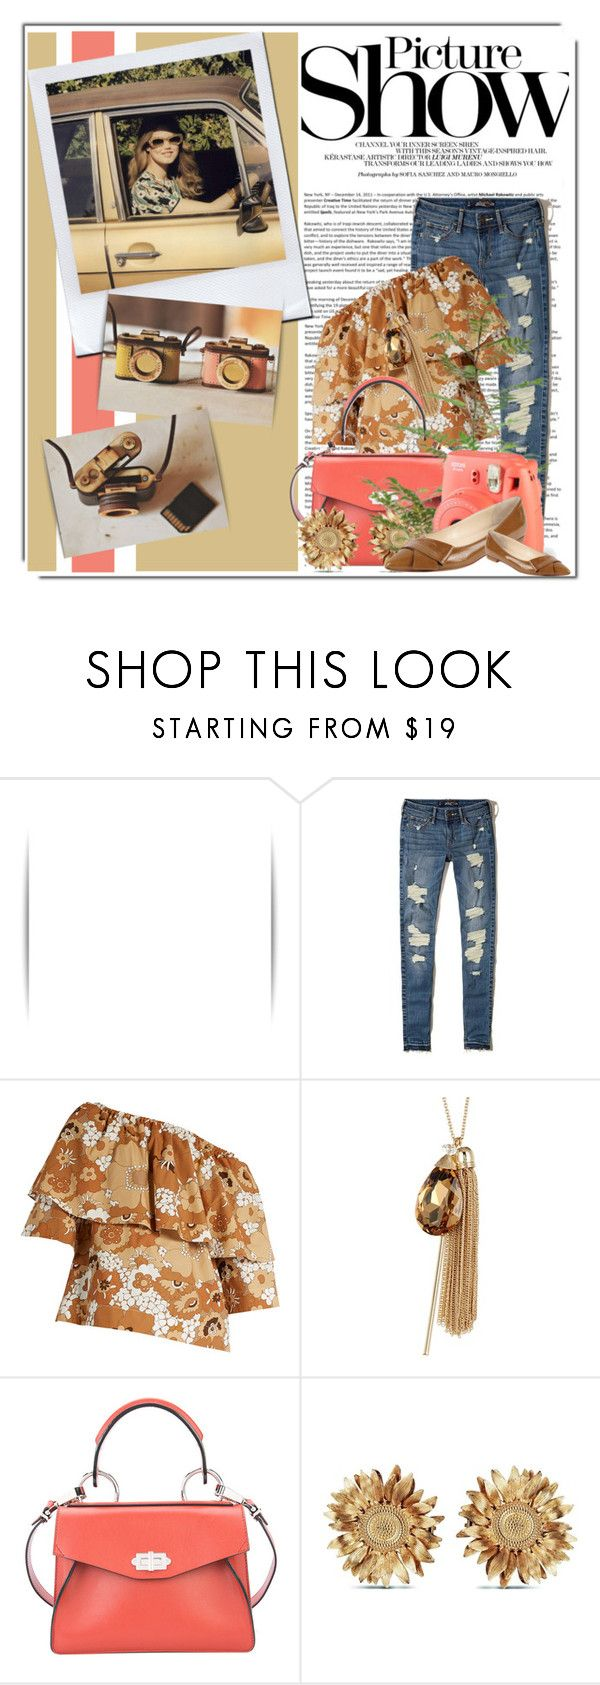 """Picture Show"" by queenrachietemplateaddict ❤ liked on Polyvore featuring SANCHEZ, Avenue, Hollister Co., Chloé, Natasha, Proenza Schouler, Asprey, DUBARRY and Butter Shoes"